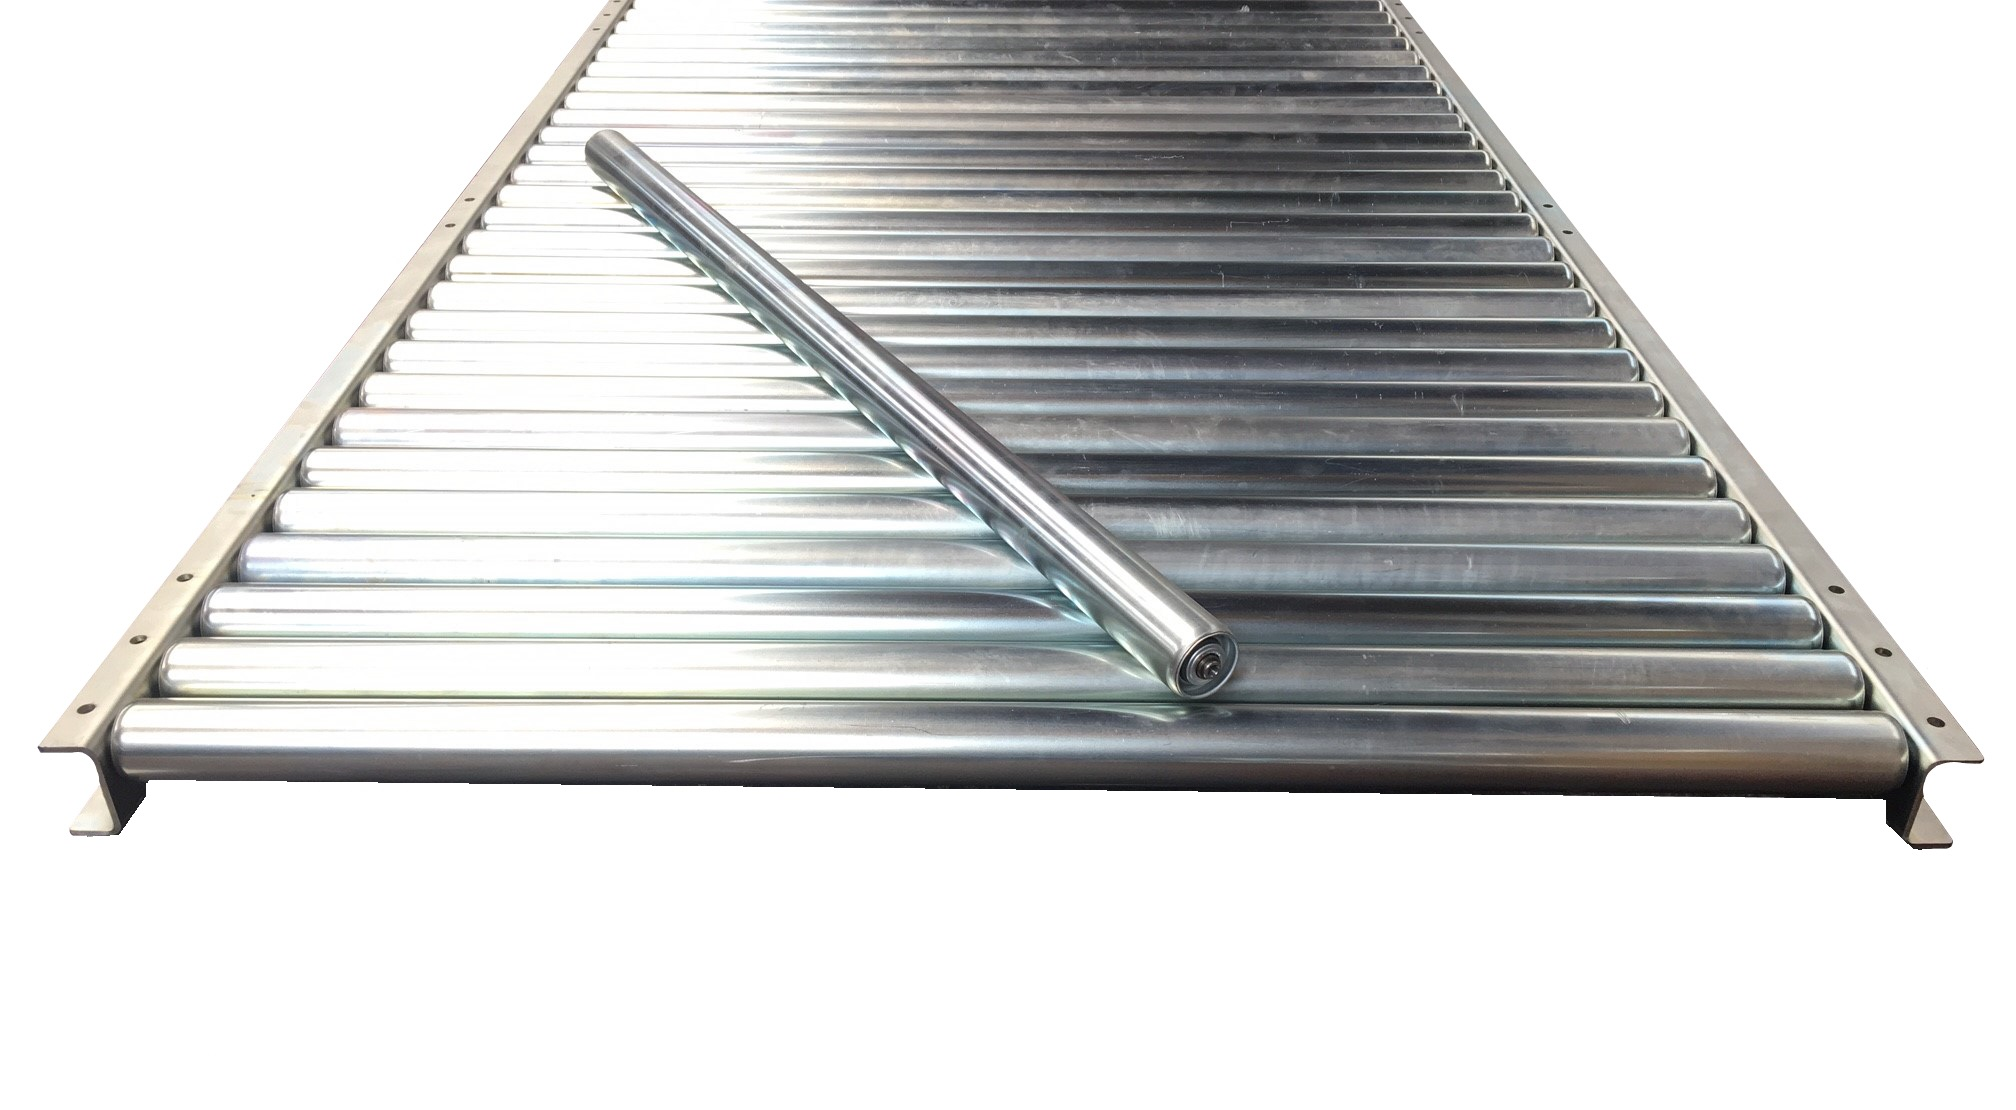 HD5 Mid Range Conveyor. Goods 100kgs upto 500kgs. Working temp -10C +120C